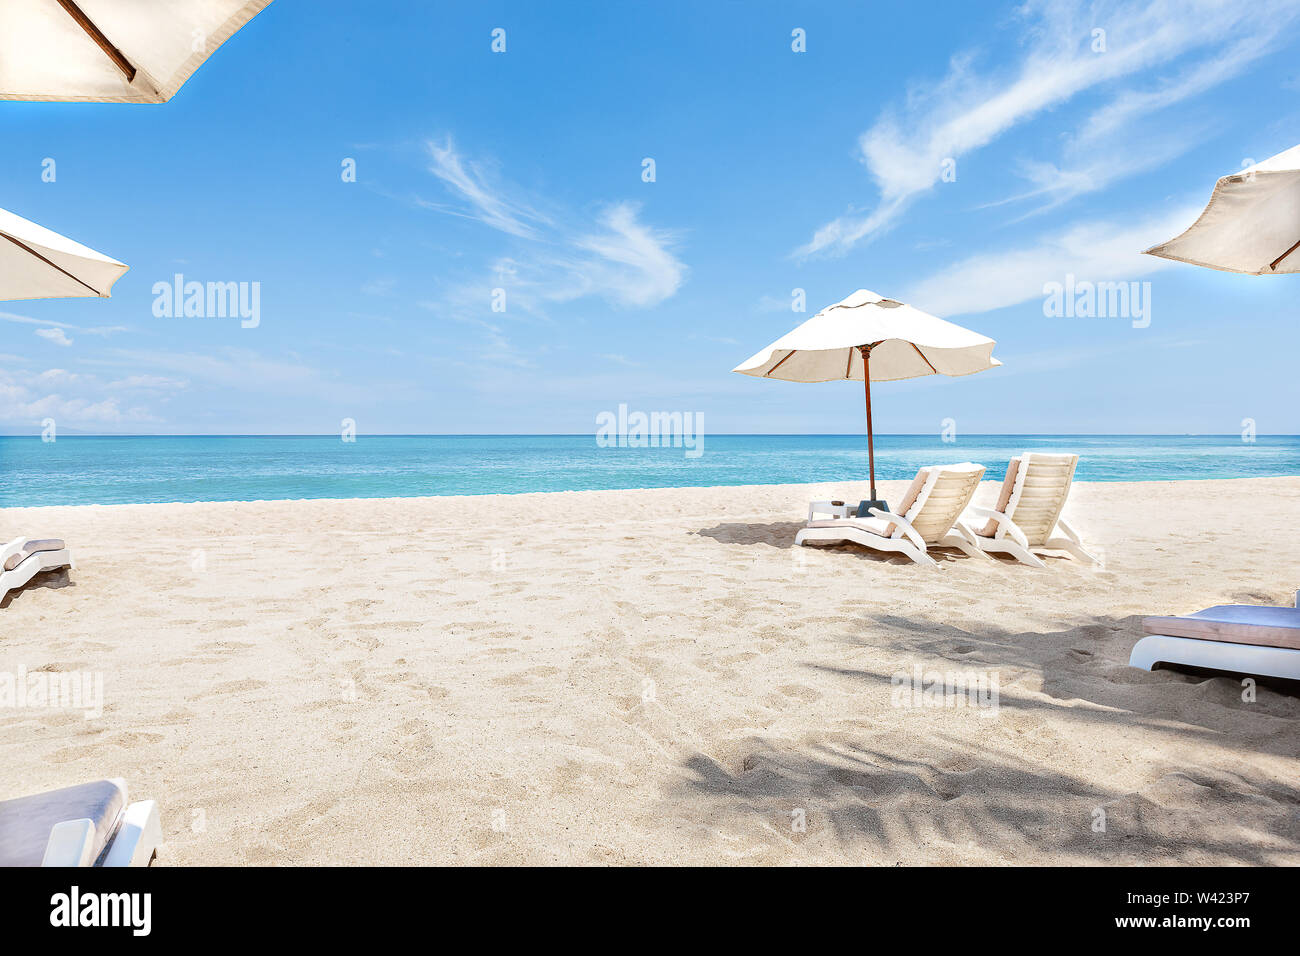 Ocean side chairs and umbrellas closeup  with blue sky and water giving the beauti of horizon - Stock Image